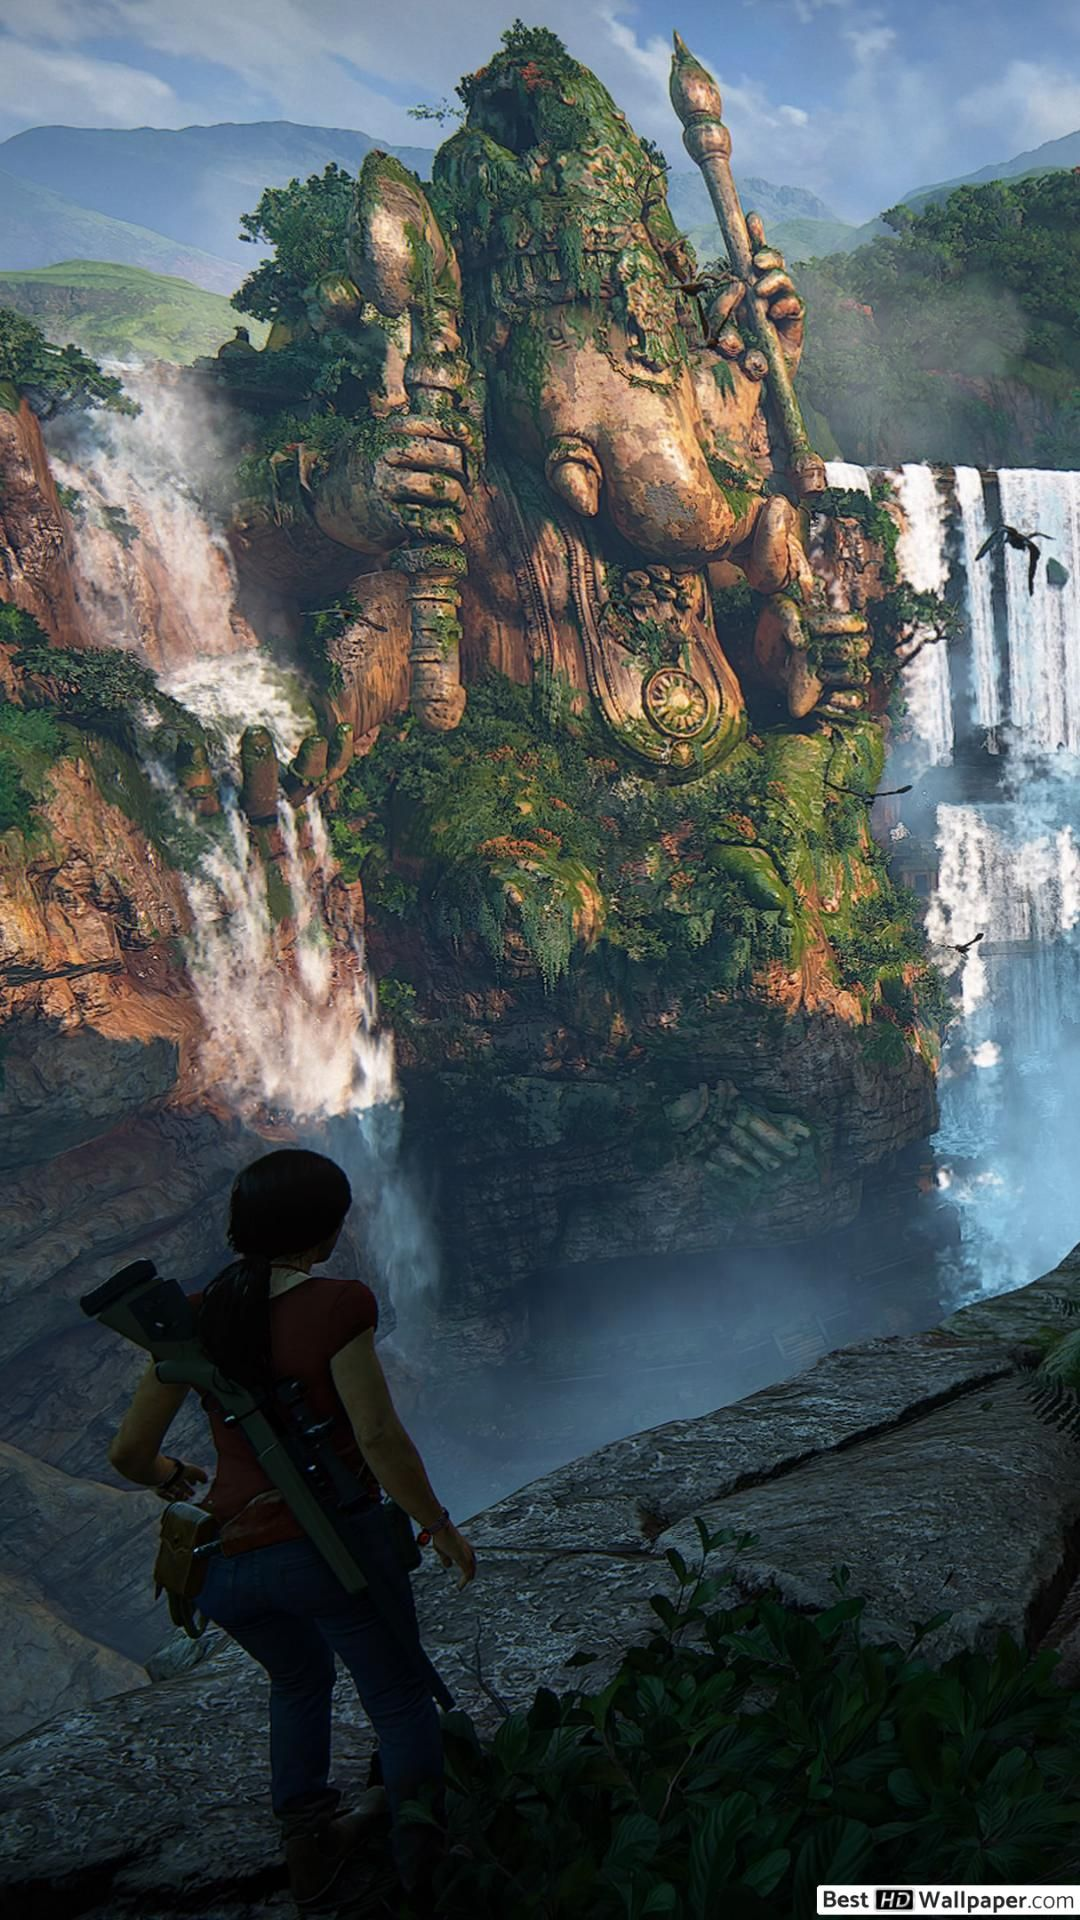 Uncharted 4 Wallpaper Android Download In 2020 Android Wallpaper Uncharted Wallpaper